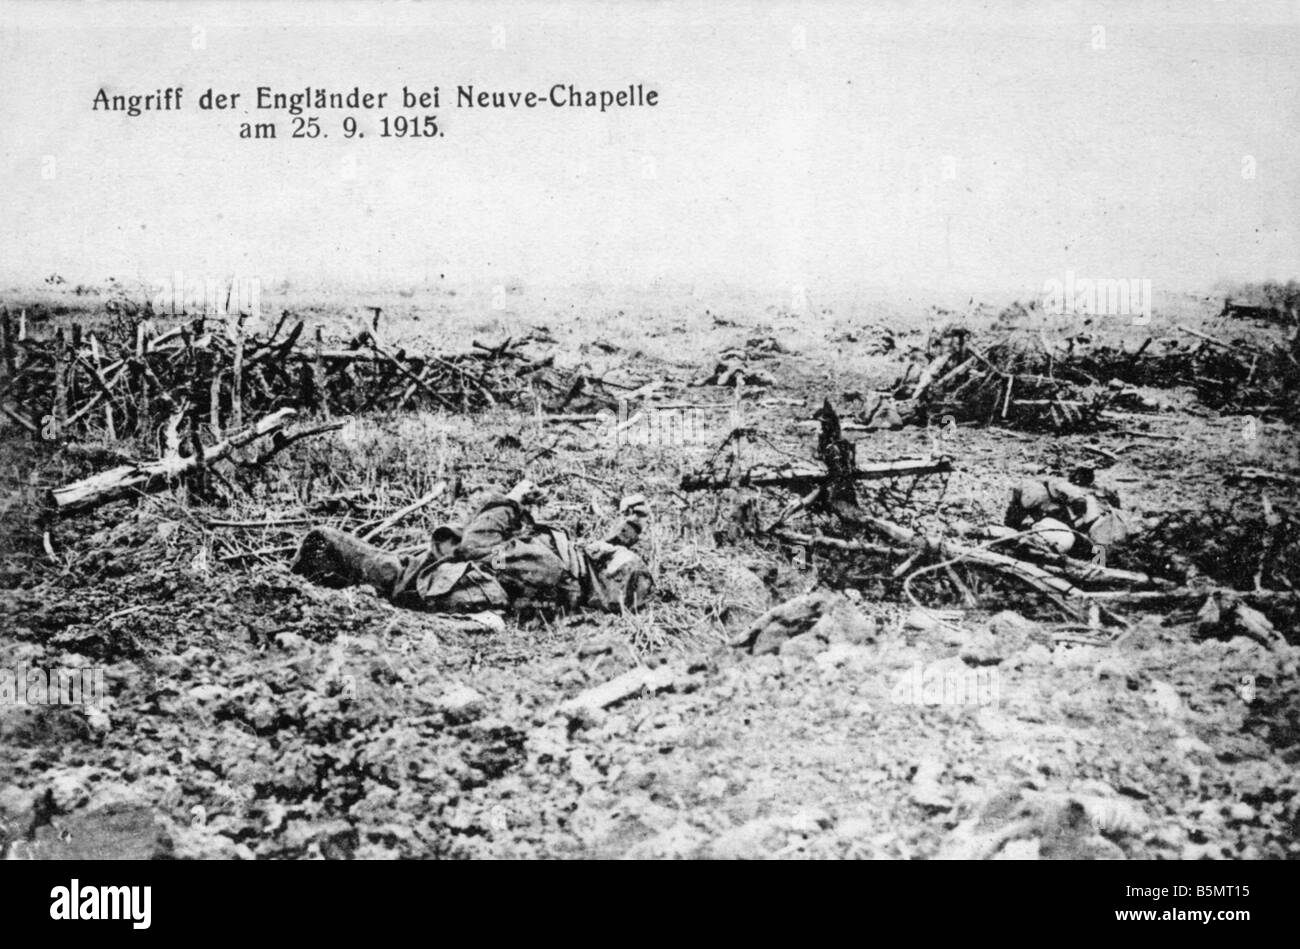 9FK 1915 9 25 A1 WWI Battlefield at Neuve Chapelle World War I France Positional warfare at Neuve Chapelle Artois - Stock Image